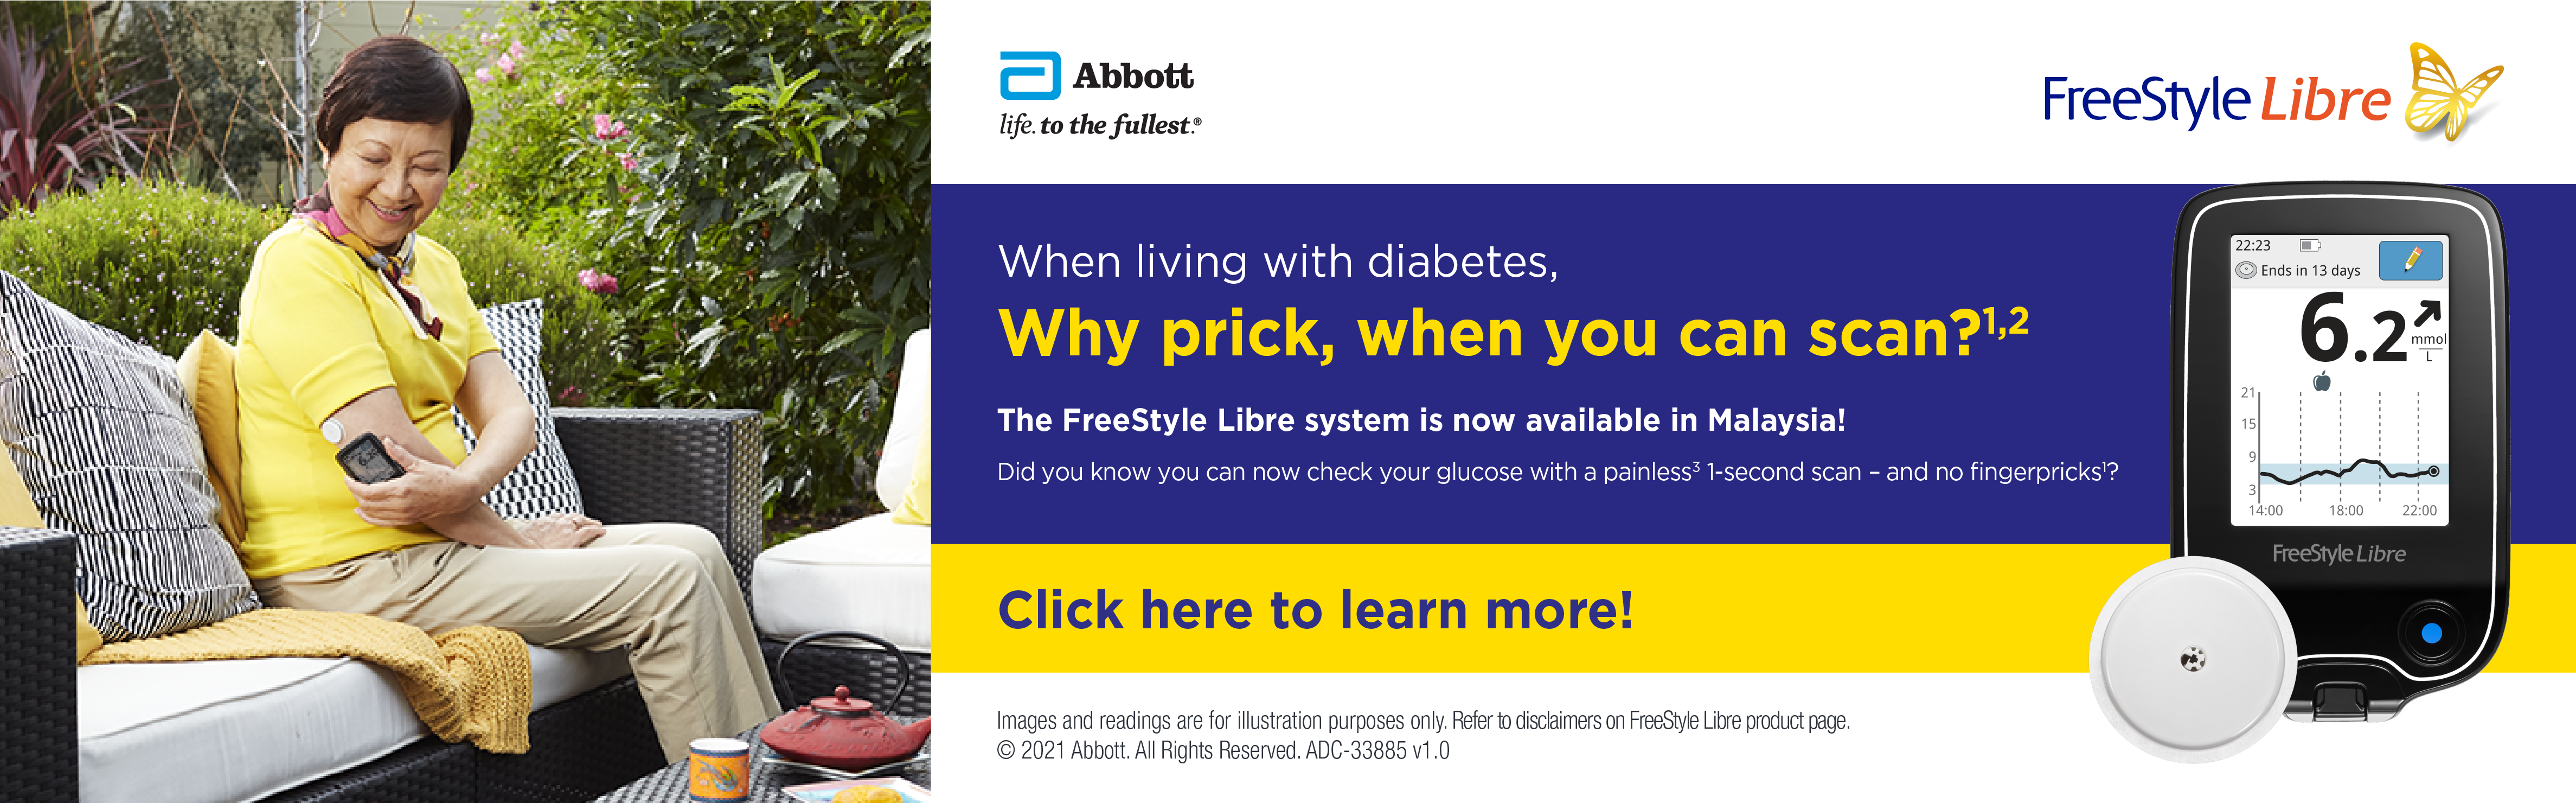 https://www.alpropharmacy.com/oneclick/product/freestyle-libre-glucose-monitoring-system-freestyle-libre-glucose-monitoring-sensor-14-days/